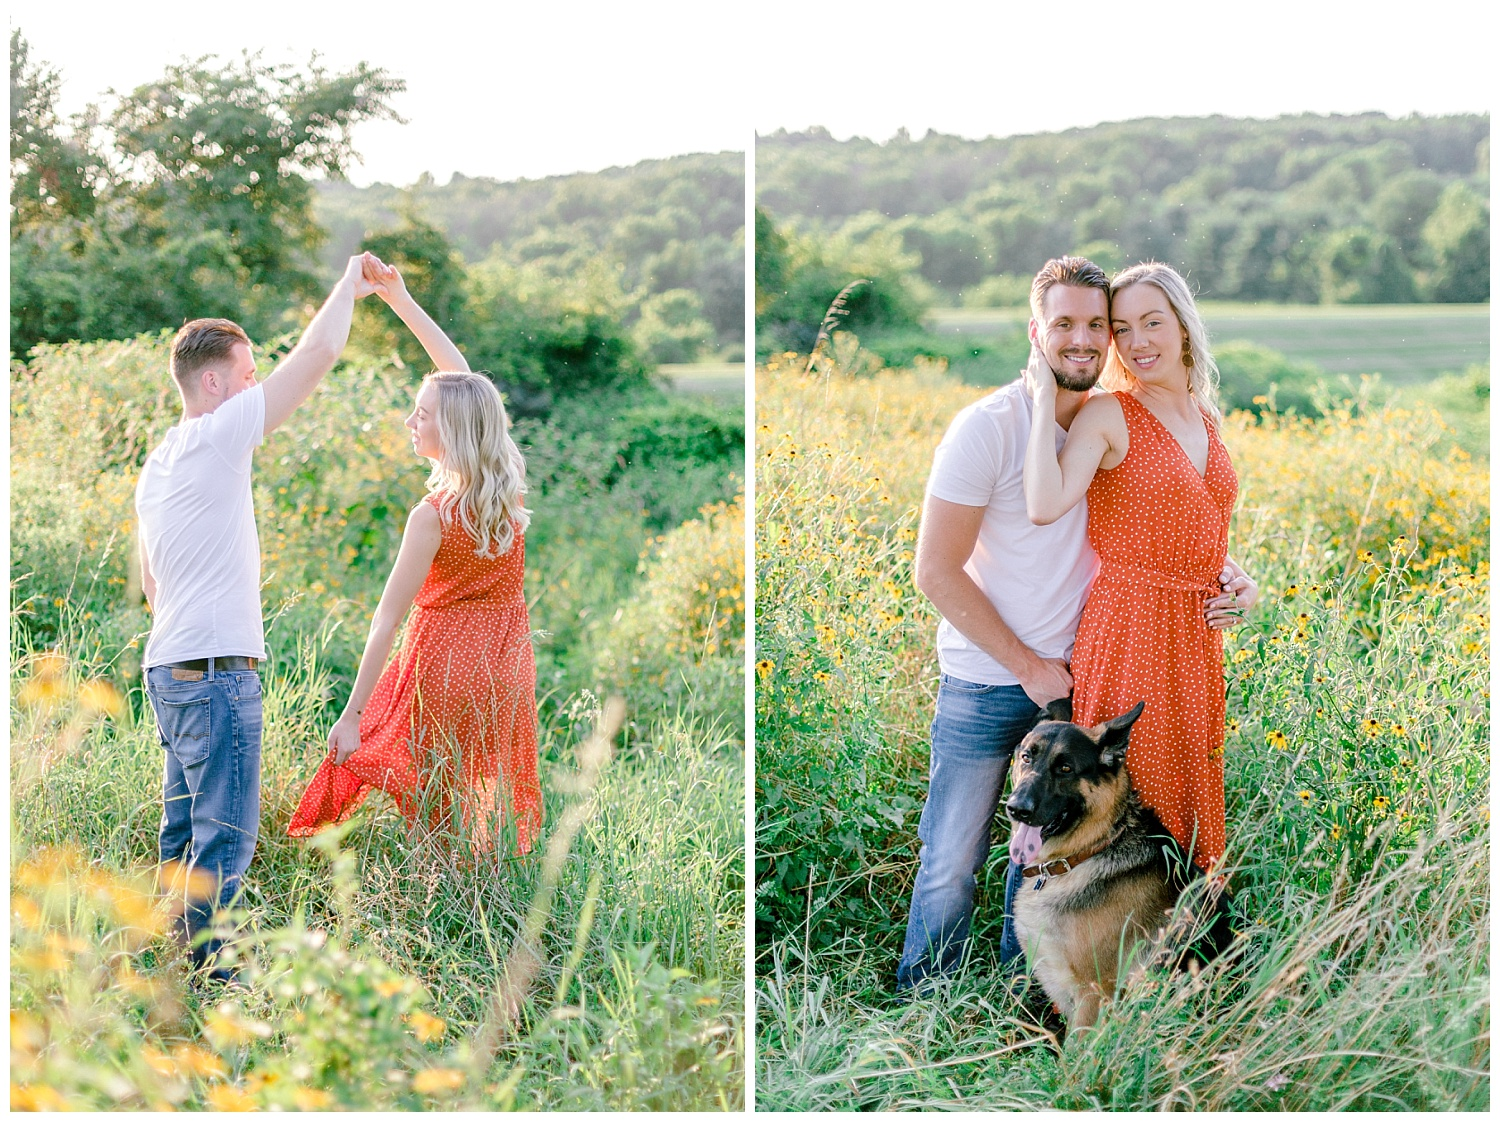 Blue Marsh Lake Reading Pennsylvania flower field golden hour engagement session by PA based wedding and lifestyle photographer Lytle photography_0018.jpg